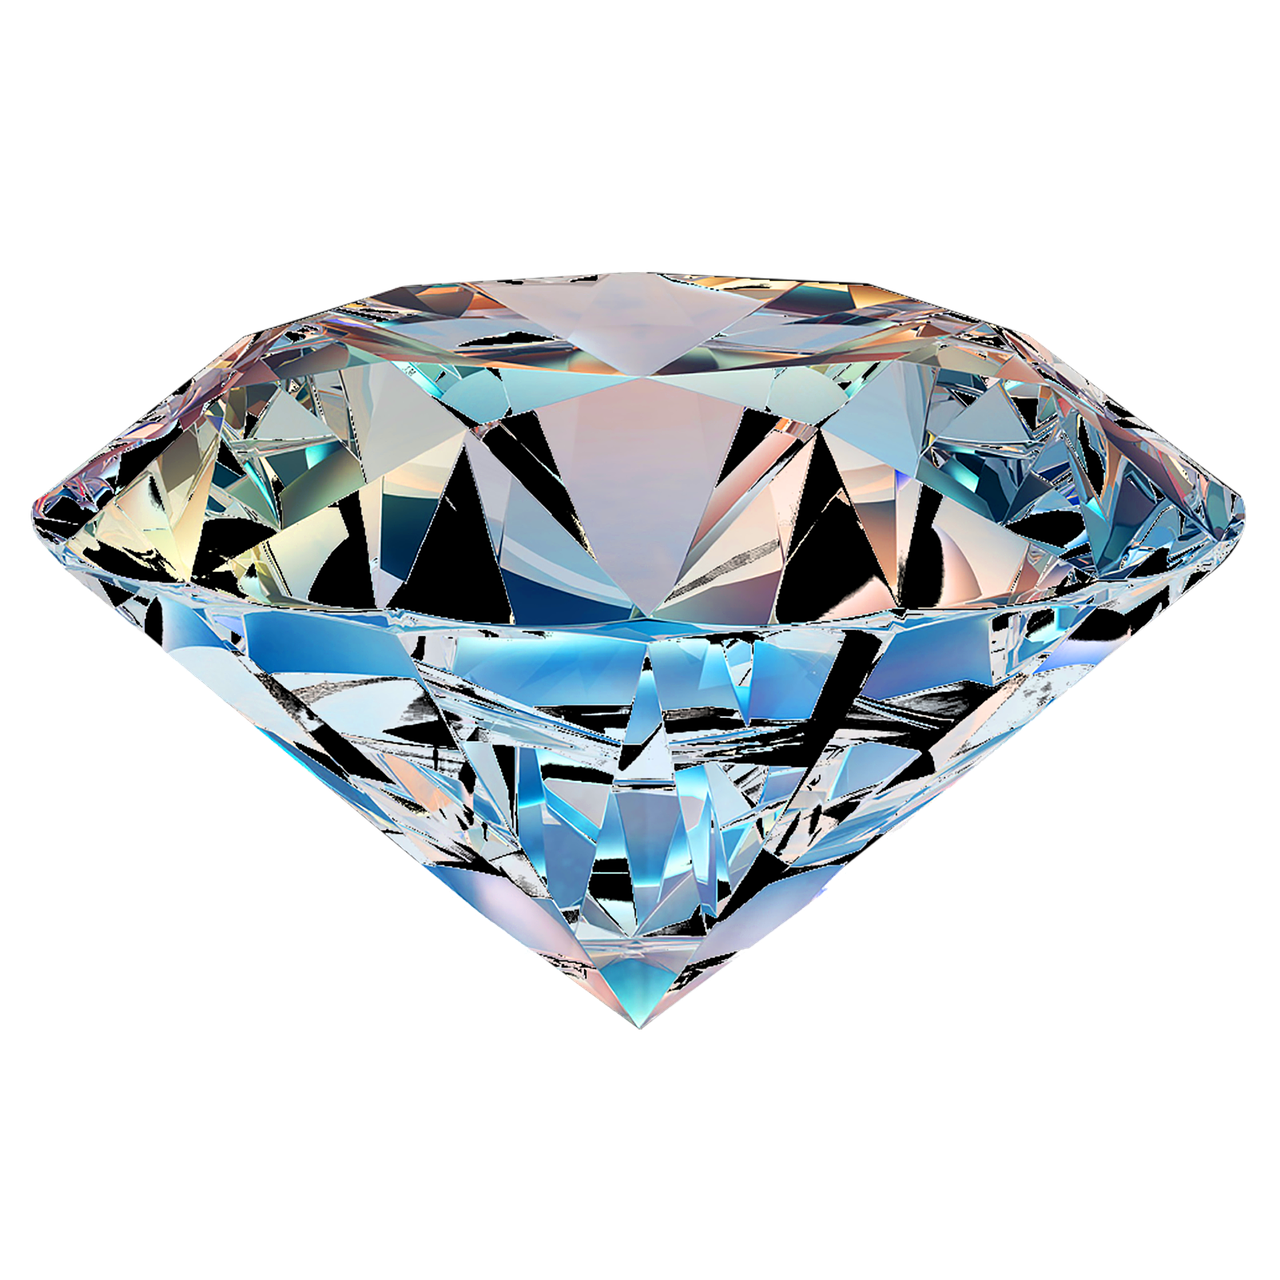 diamond,isolated,transparent,transparent diamond,isolated diamond,png images,png diamond,transparent background,background removing images,free pictures, free photos, free images, royalty free, free illustrations, public domain